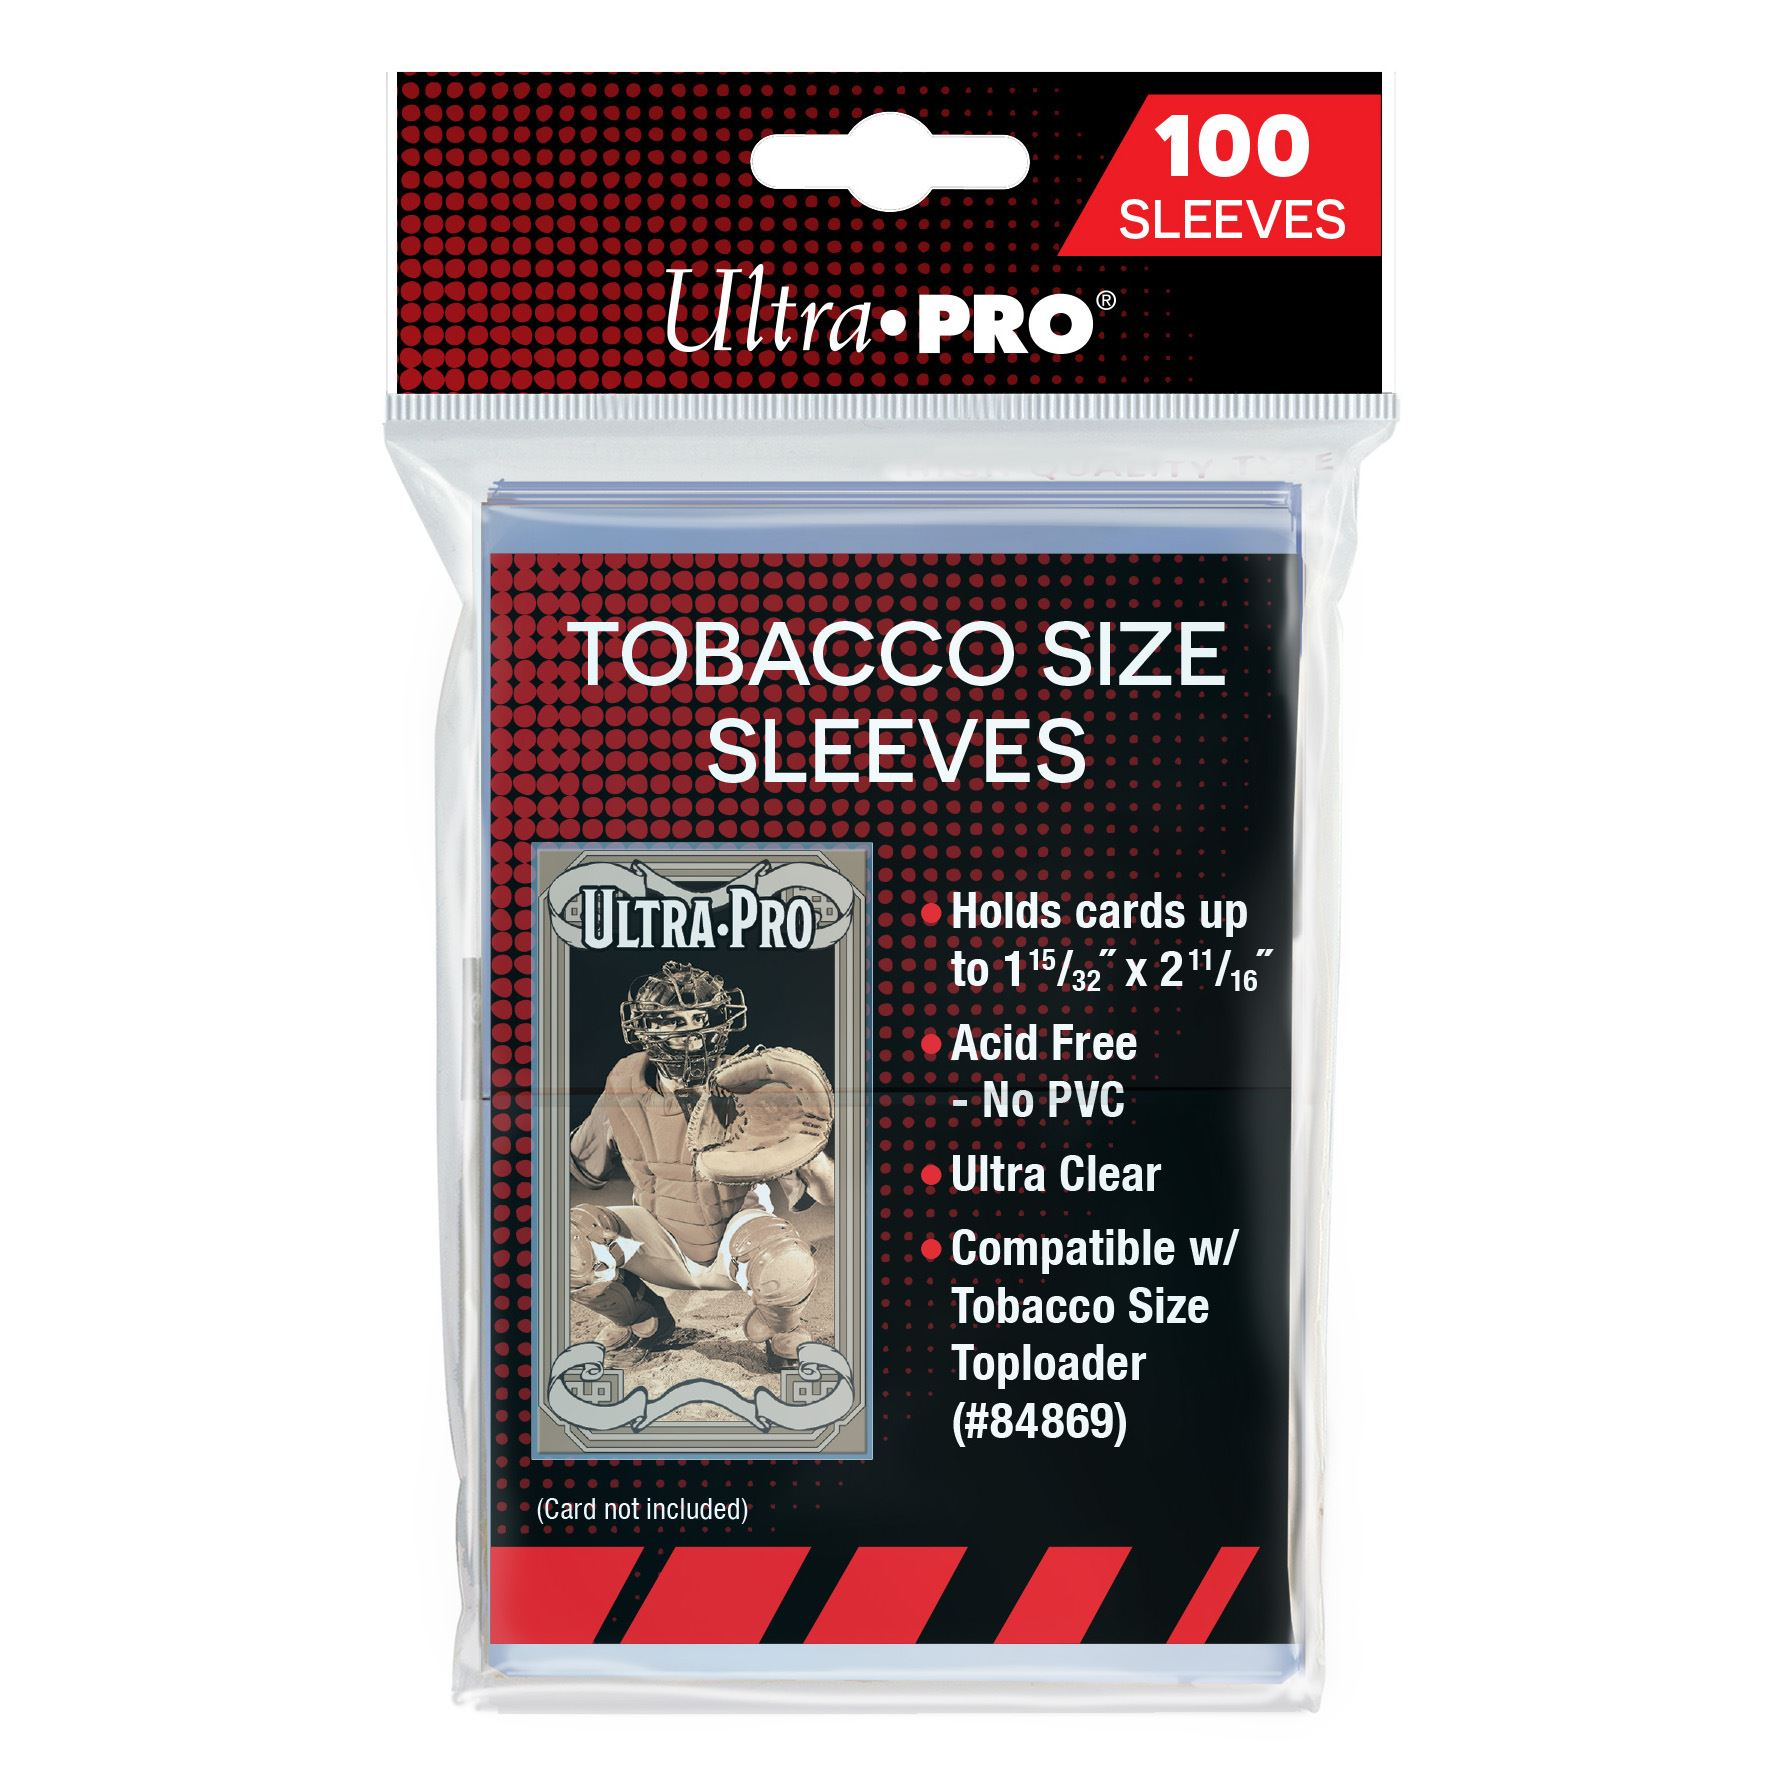 Ultra Pro Horizontal Booklet One-Touch Resealable Bags Sleeves 50 // 1 Pack